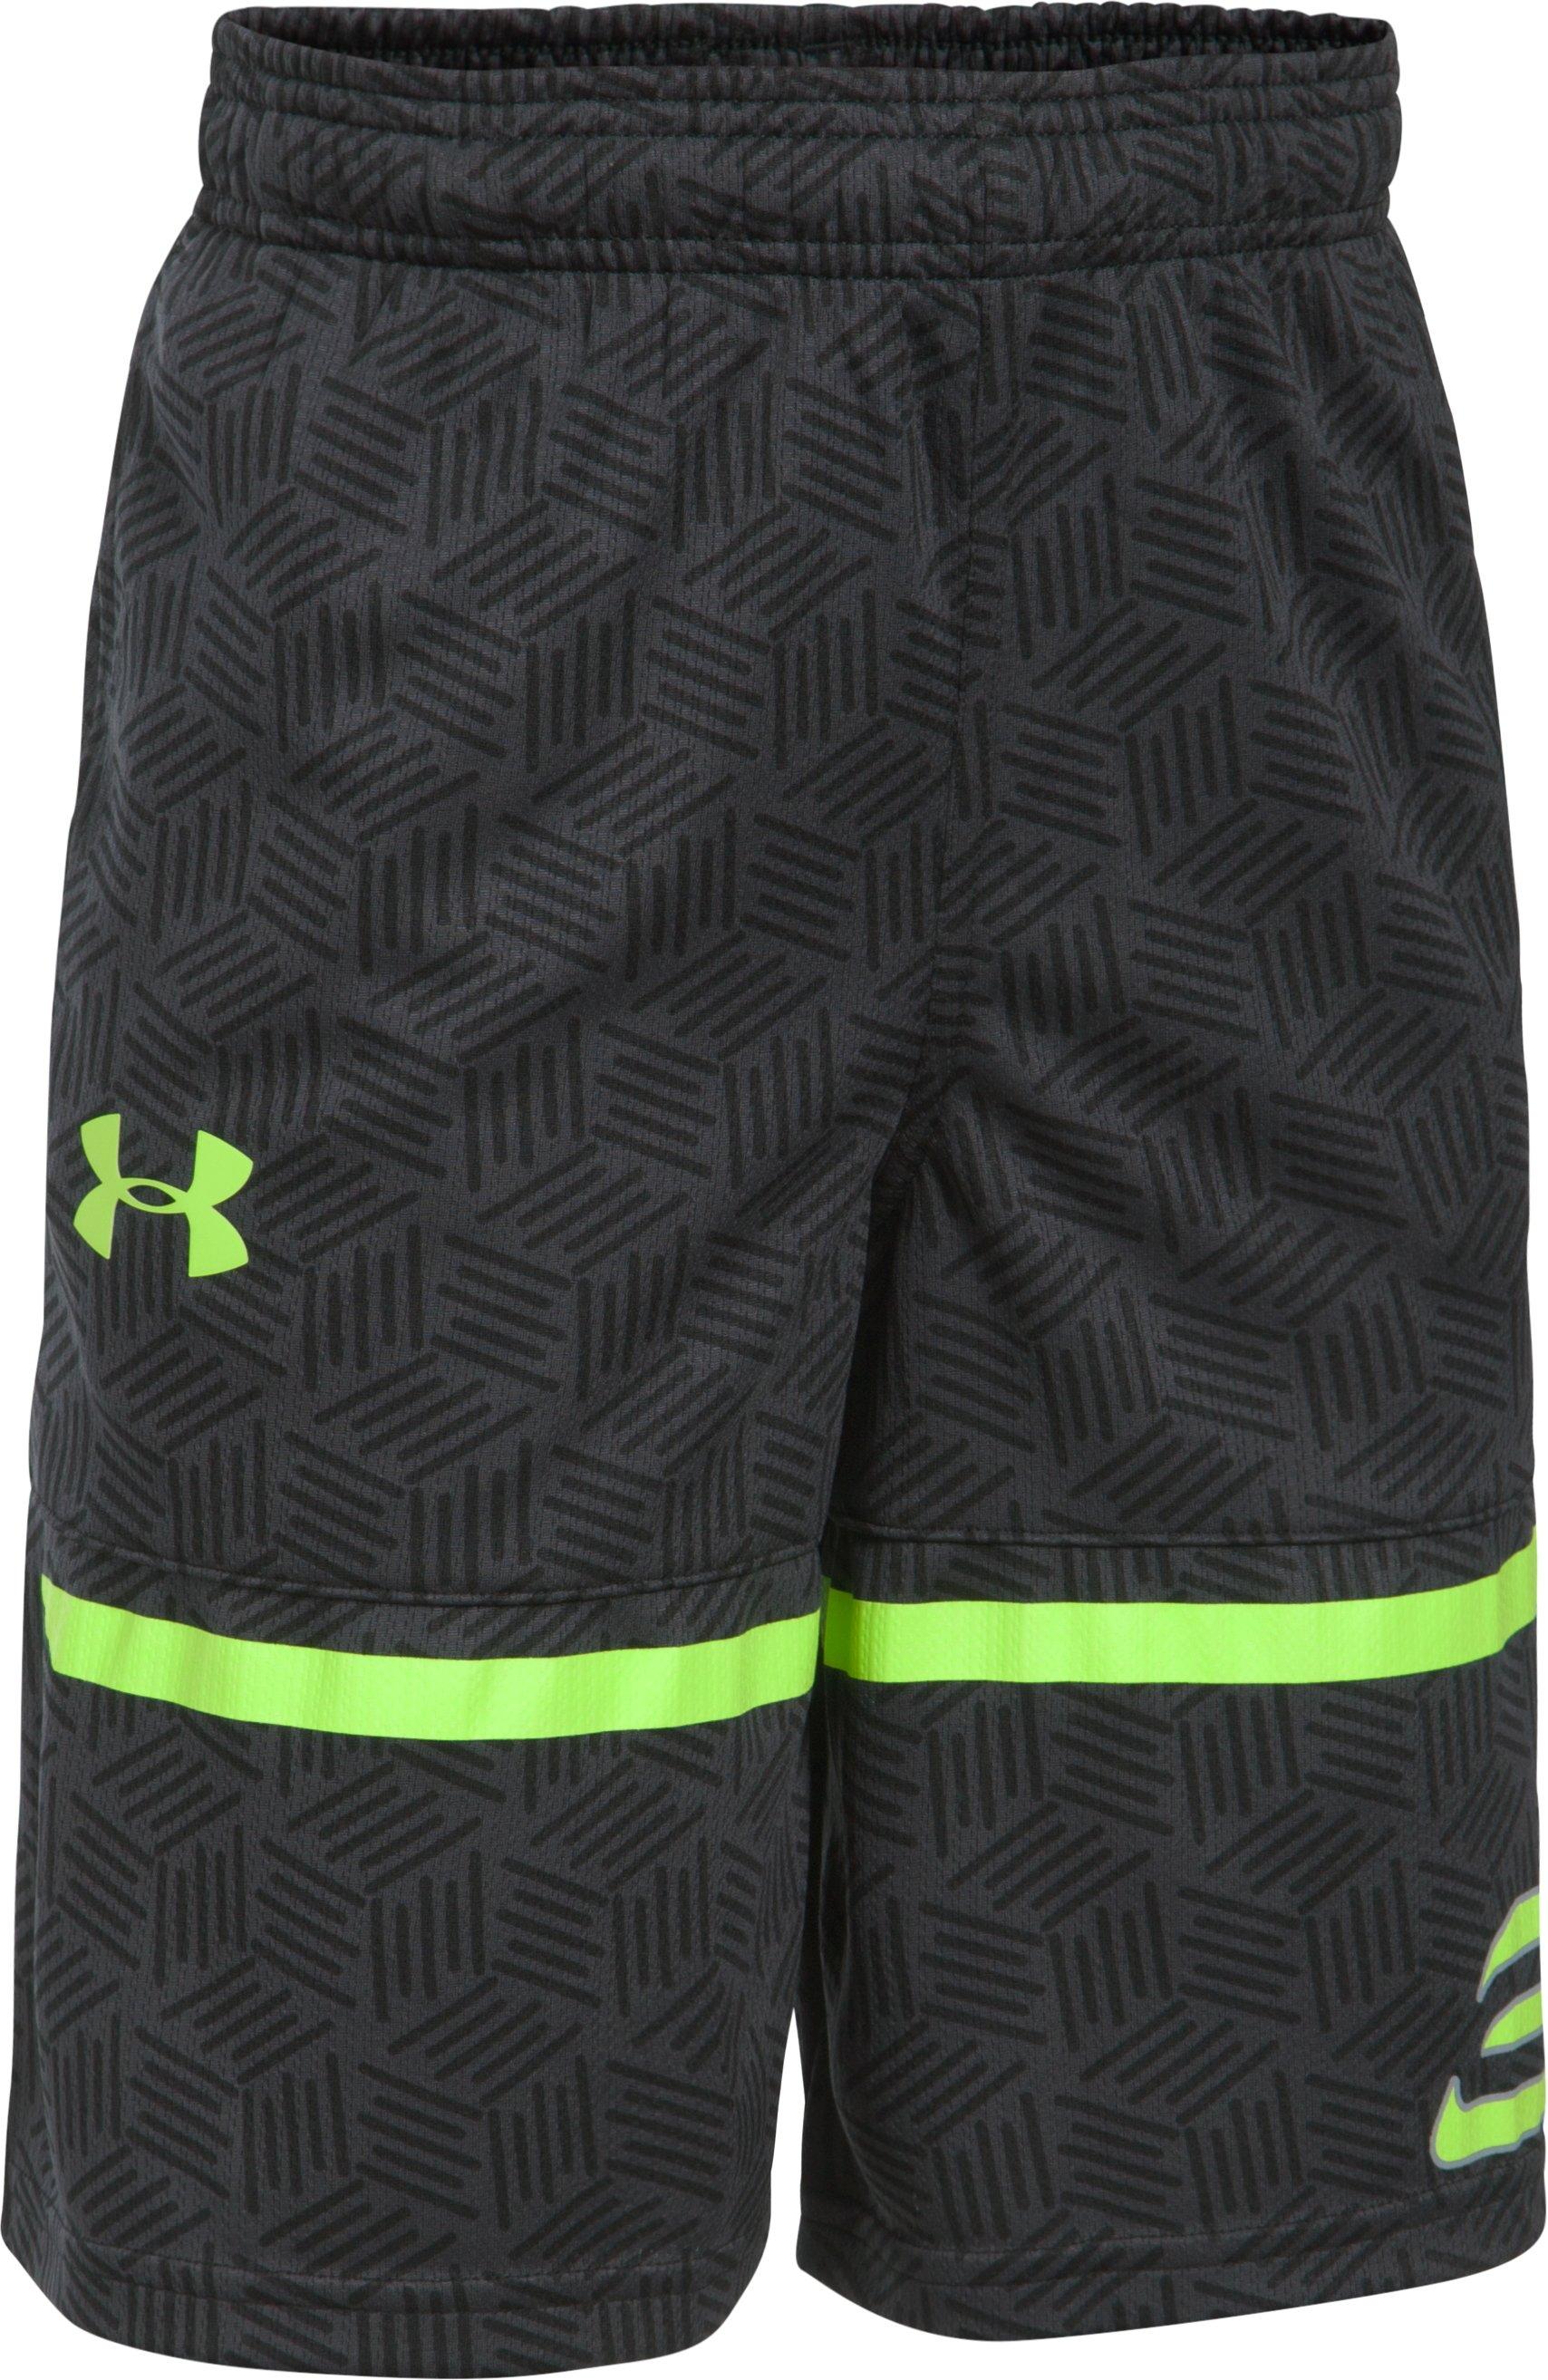 Boys' SC30 Printed Spear Shorts, Black